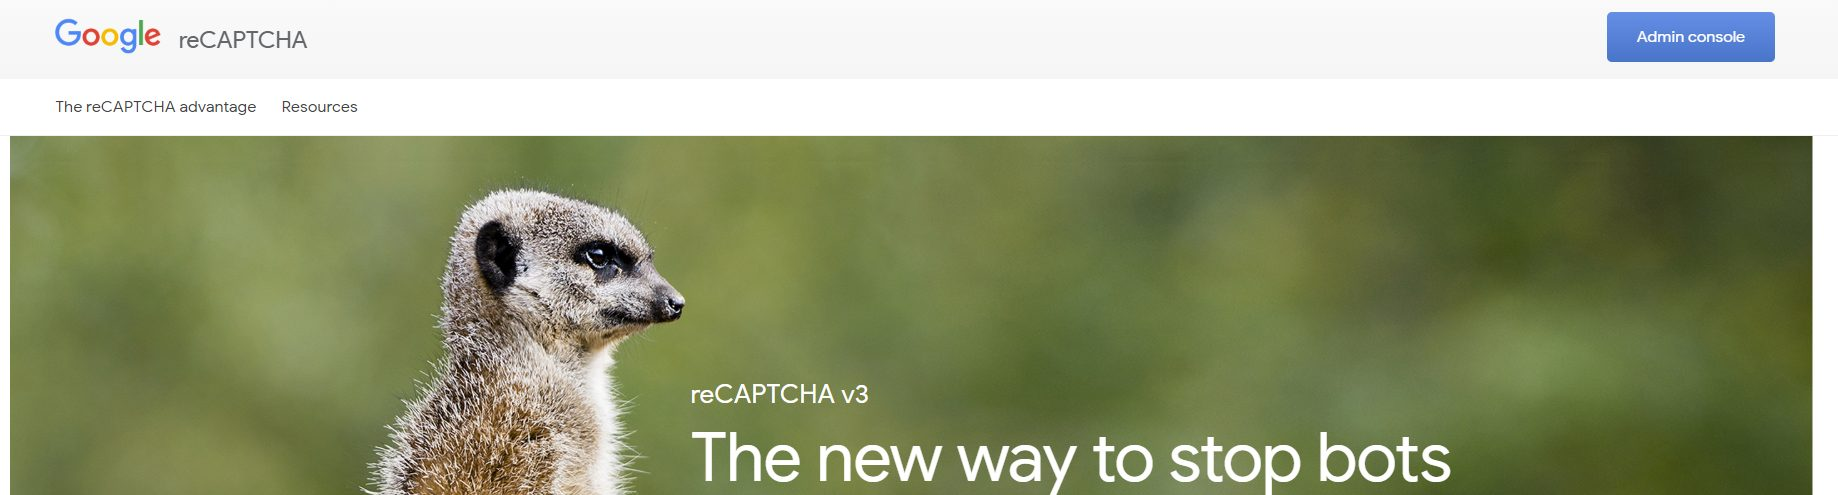 Acceder a Google reCAPTCHA para registrar WordPress